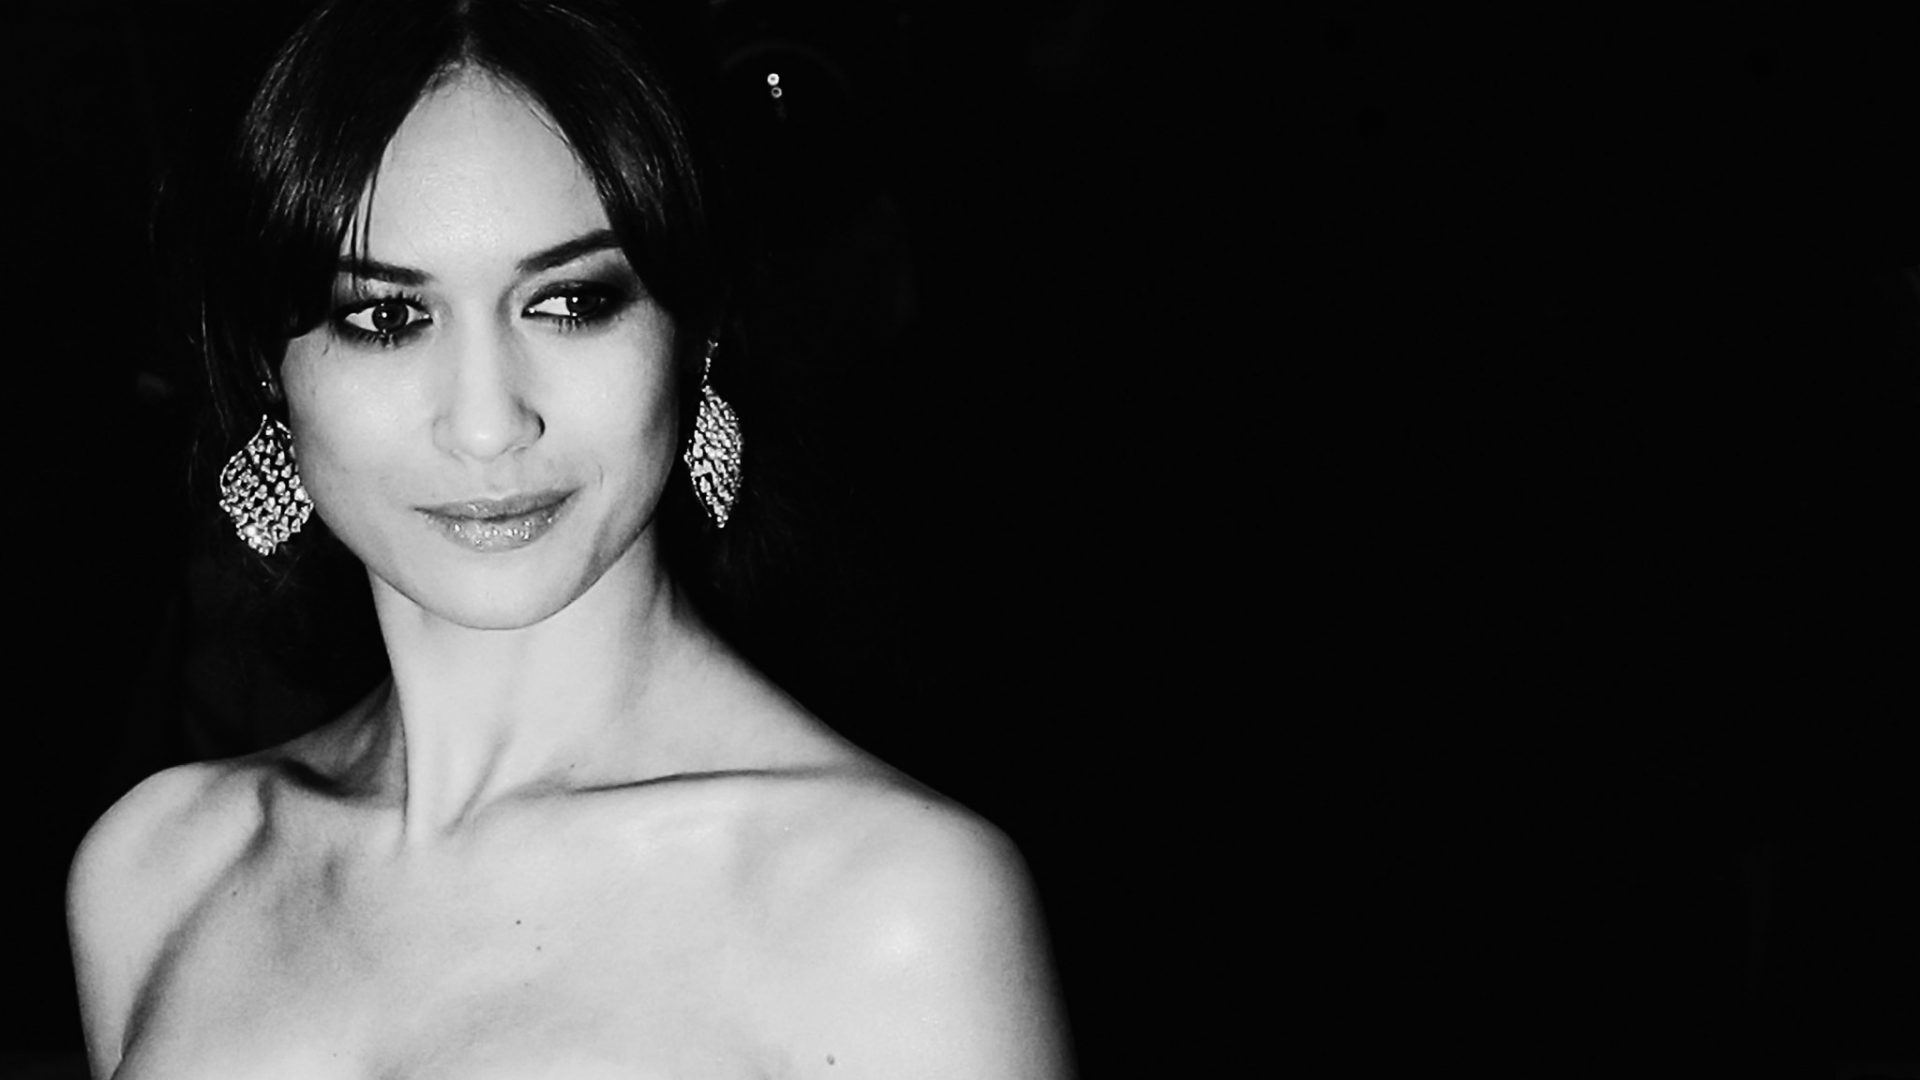 Bond girl Olga Kurylenko on how she'd love to be Bond